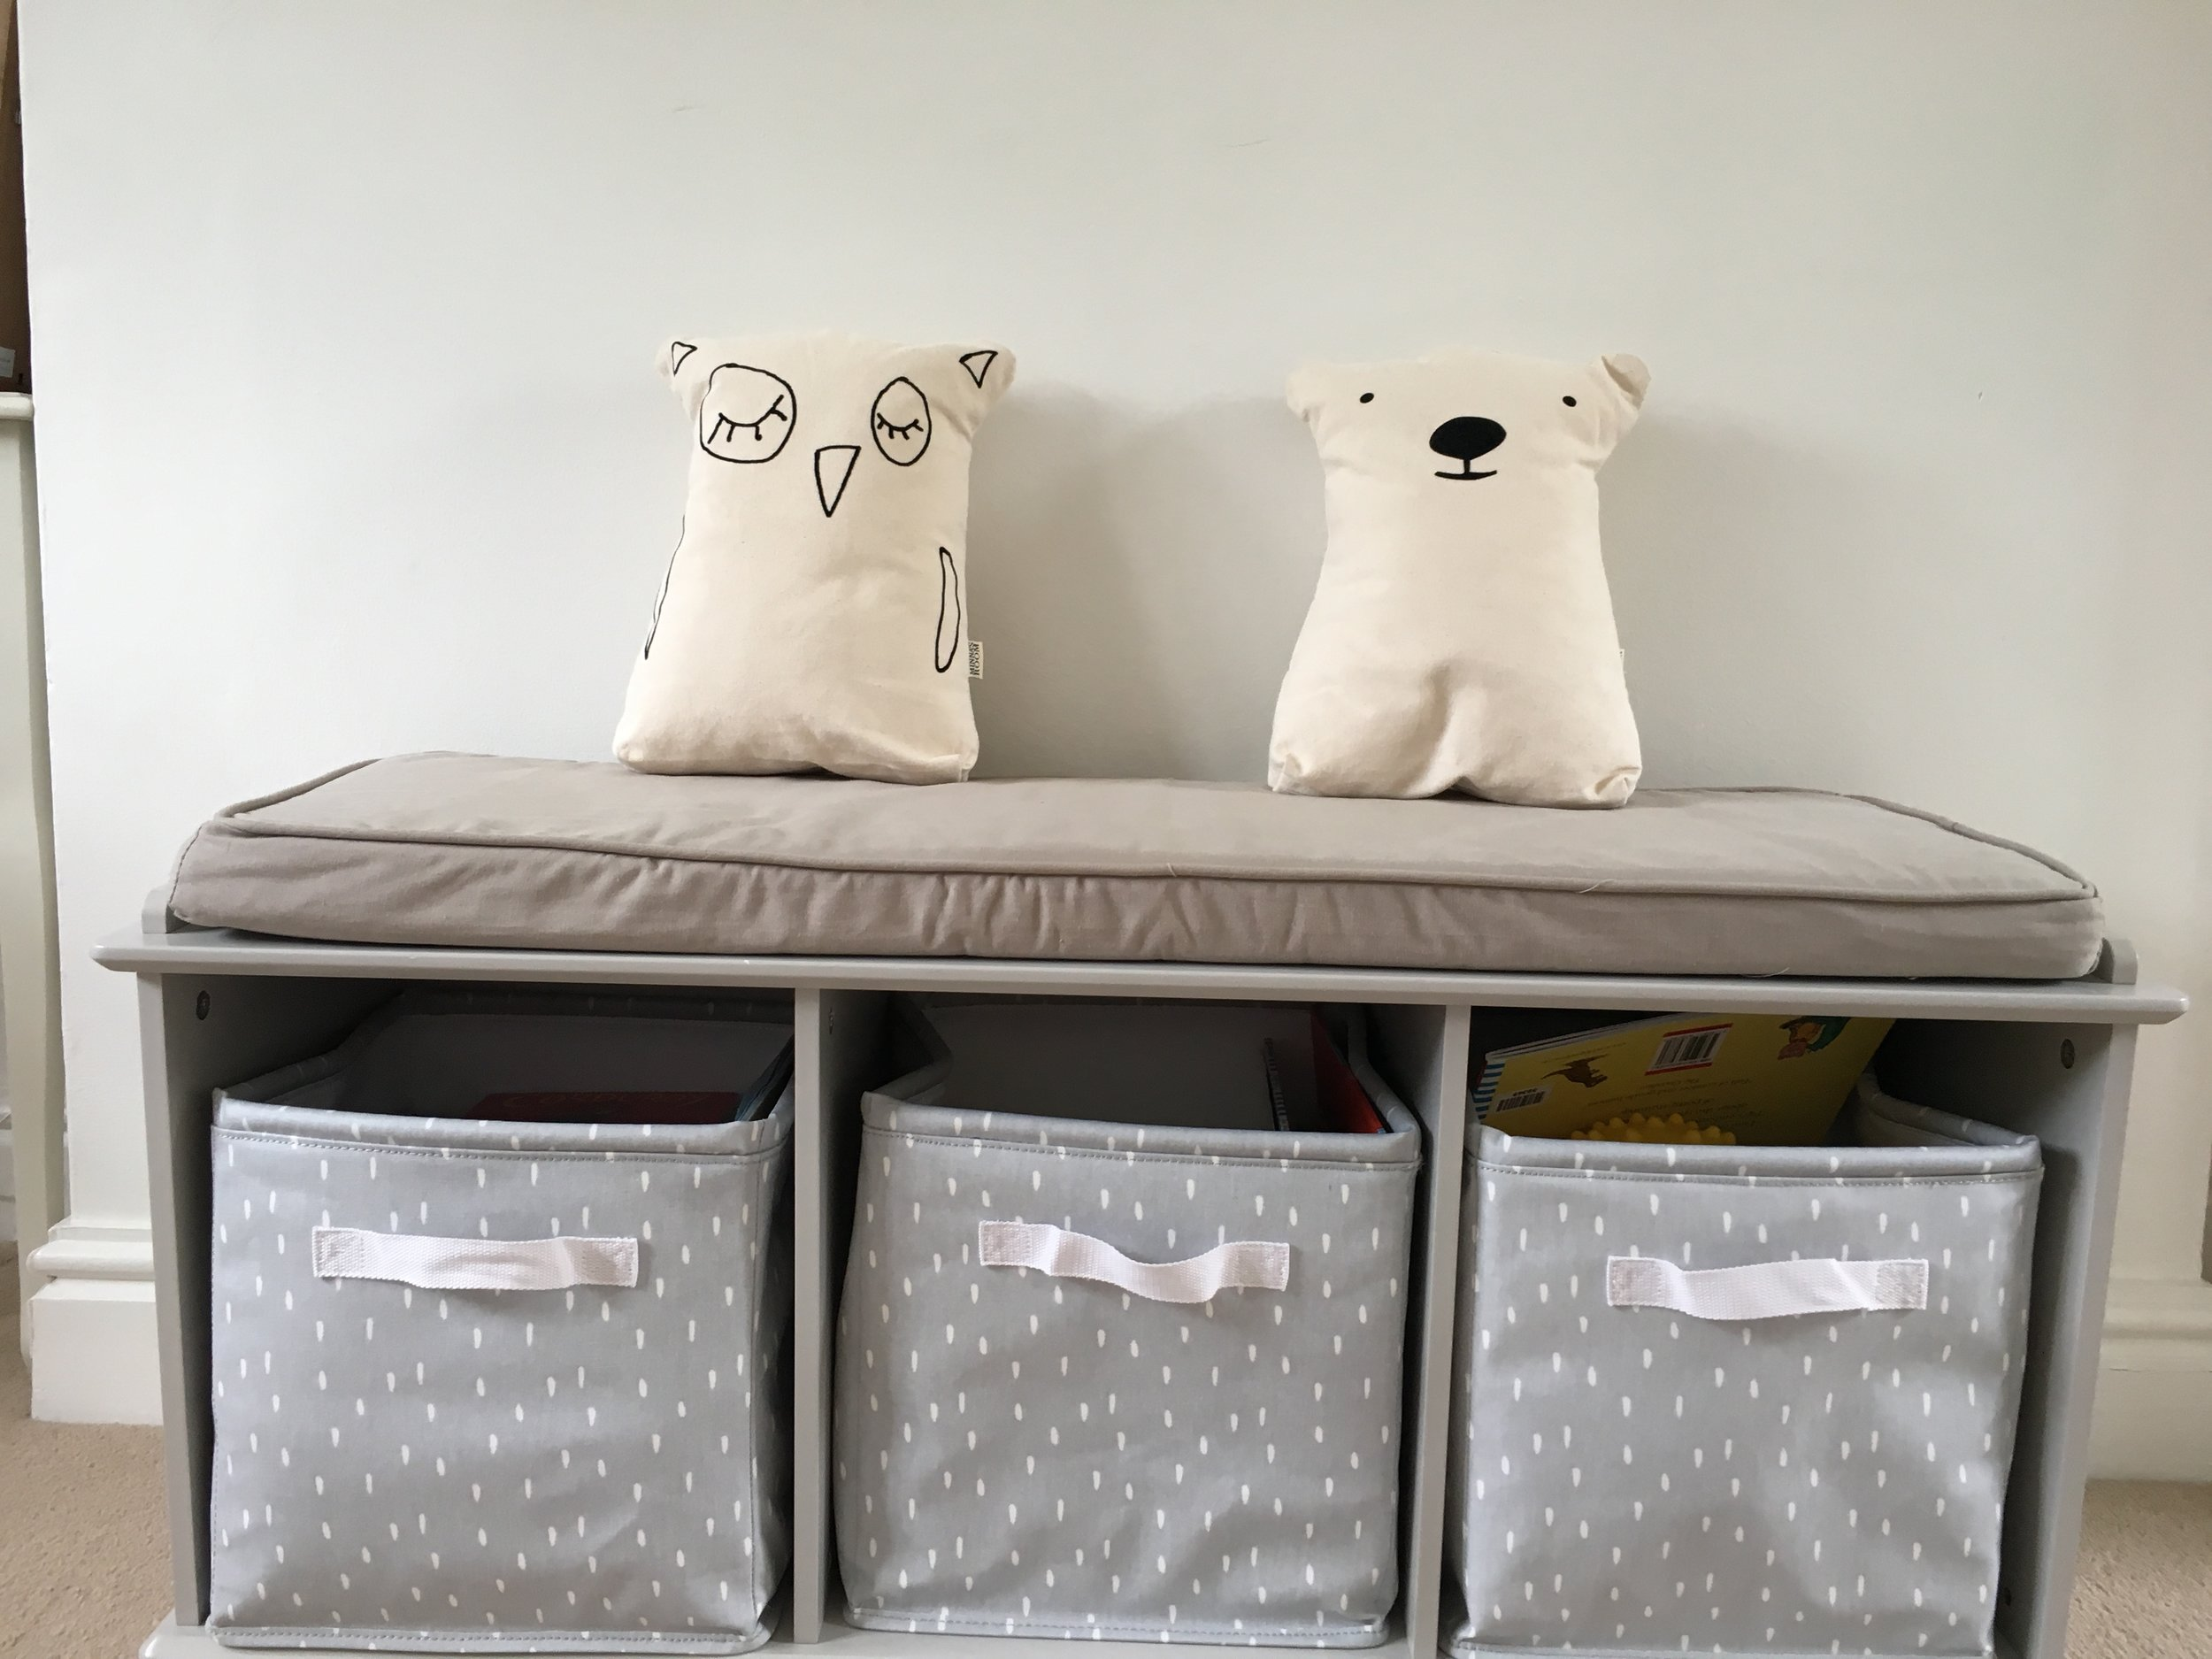 I wanted somewhere to store ruperts books and toys without it looking messy so Dominique suggested this fabulous storage bench!